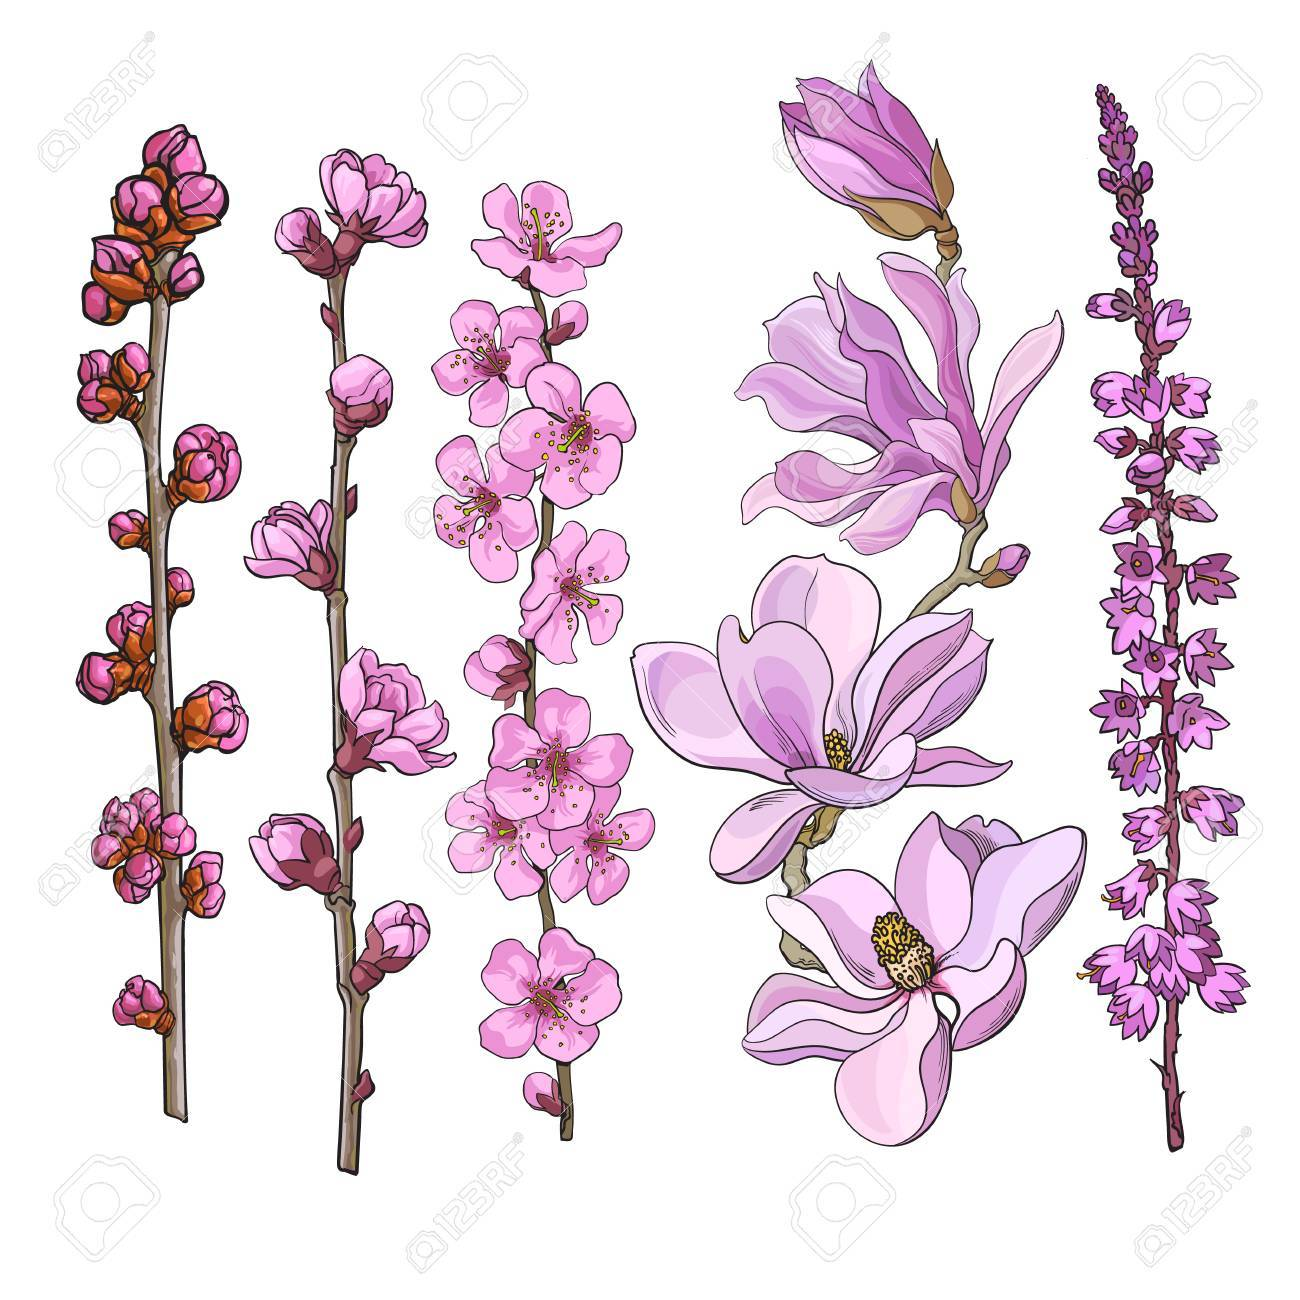 Set Of Hand Drawn Pink Flowers Magnolia Apple And Cherry Blossom